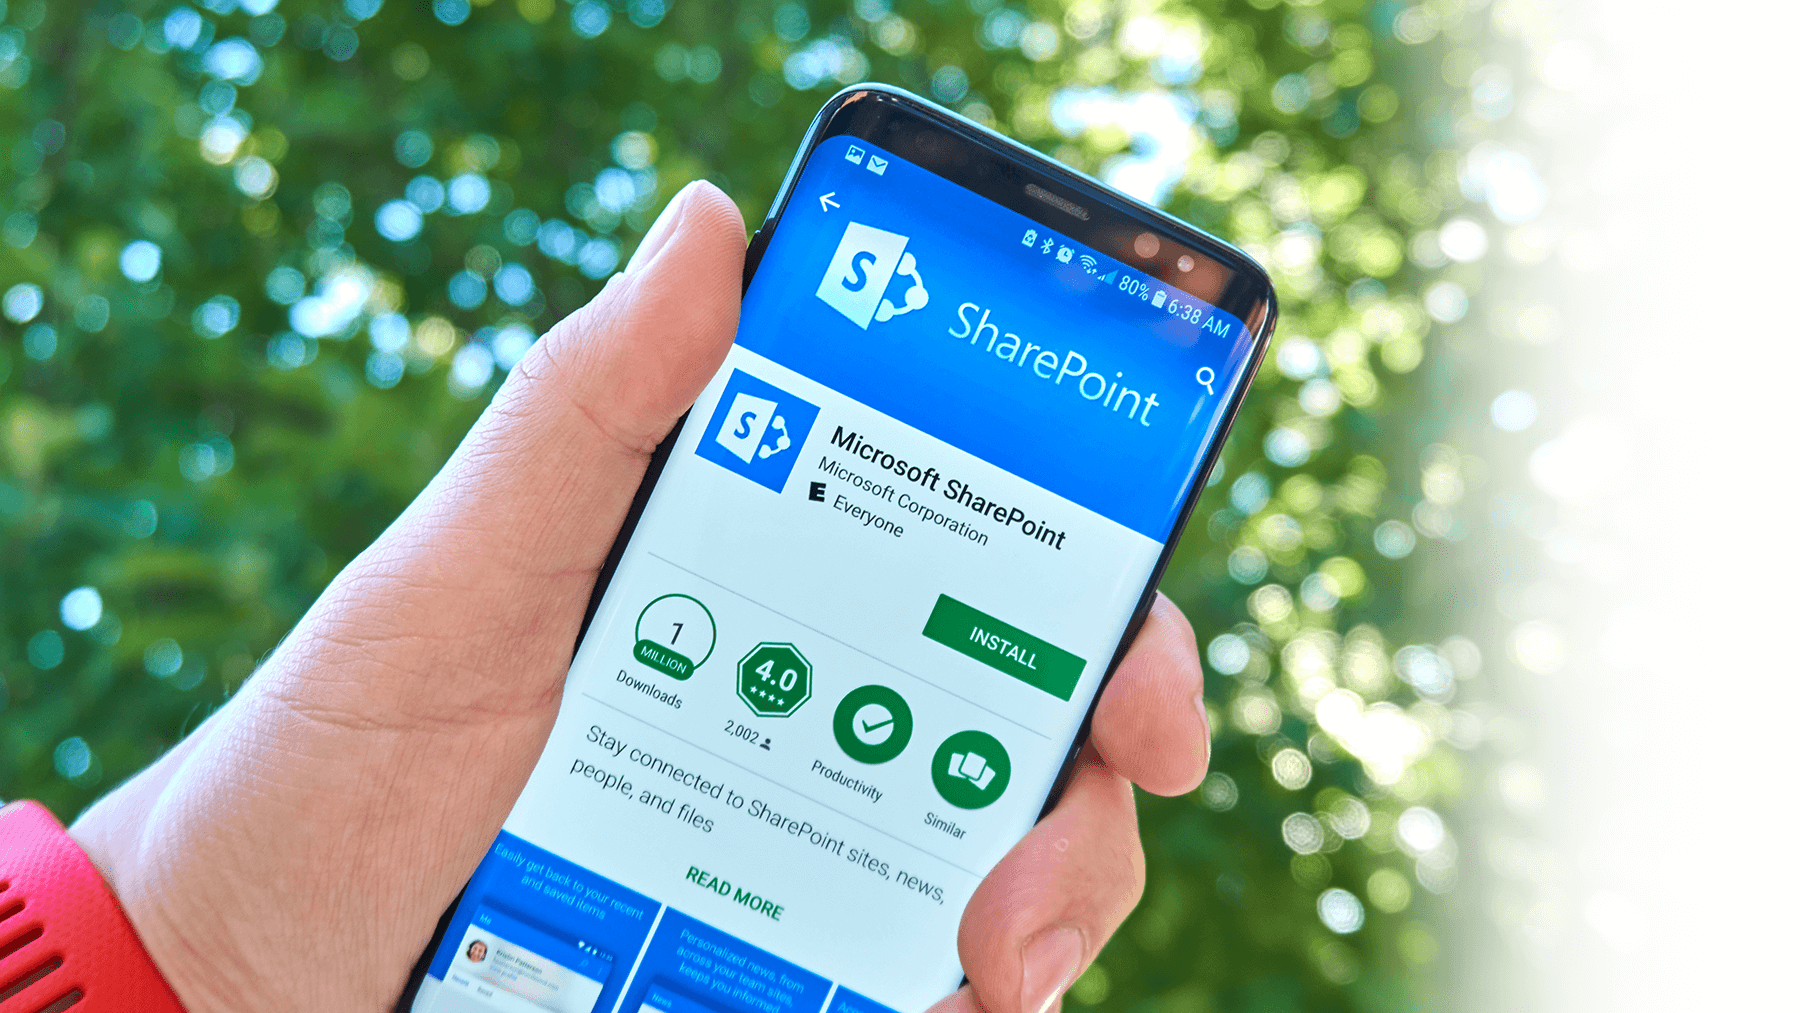 smartphone shows microsoft sharepoint app